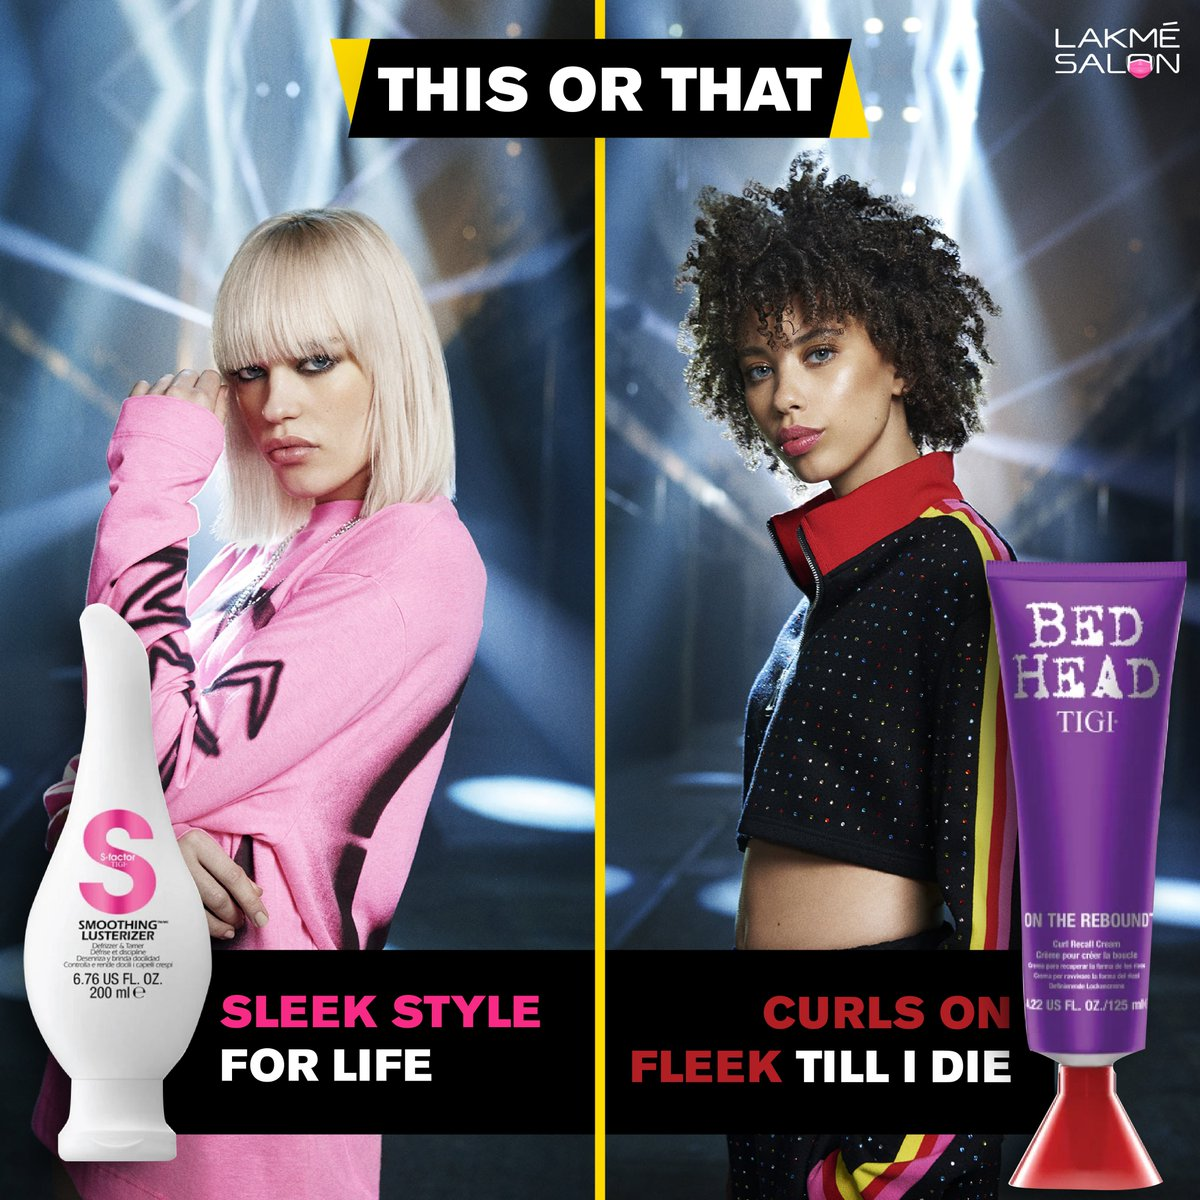 If you had to choose just one style for all your life, which one would you pick? Tell us in the comments below 👇  . #tigi #tigiindia #haircare #hairstyles #quiz #thisorthat #choose #shopnow #happyshopping #lakmesalon https://t.co/T8UTEt008f